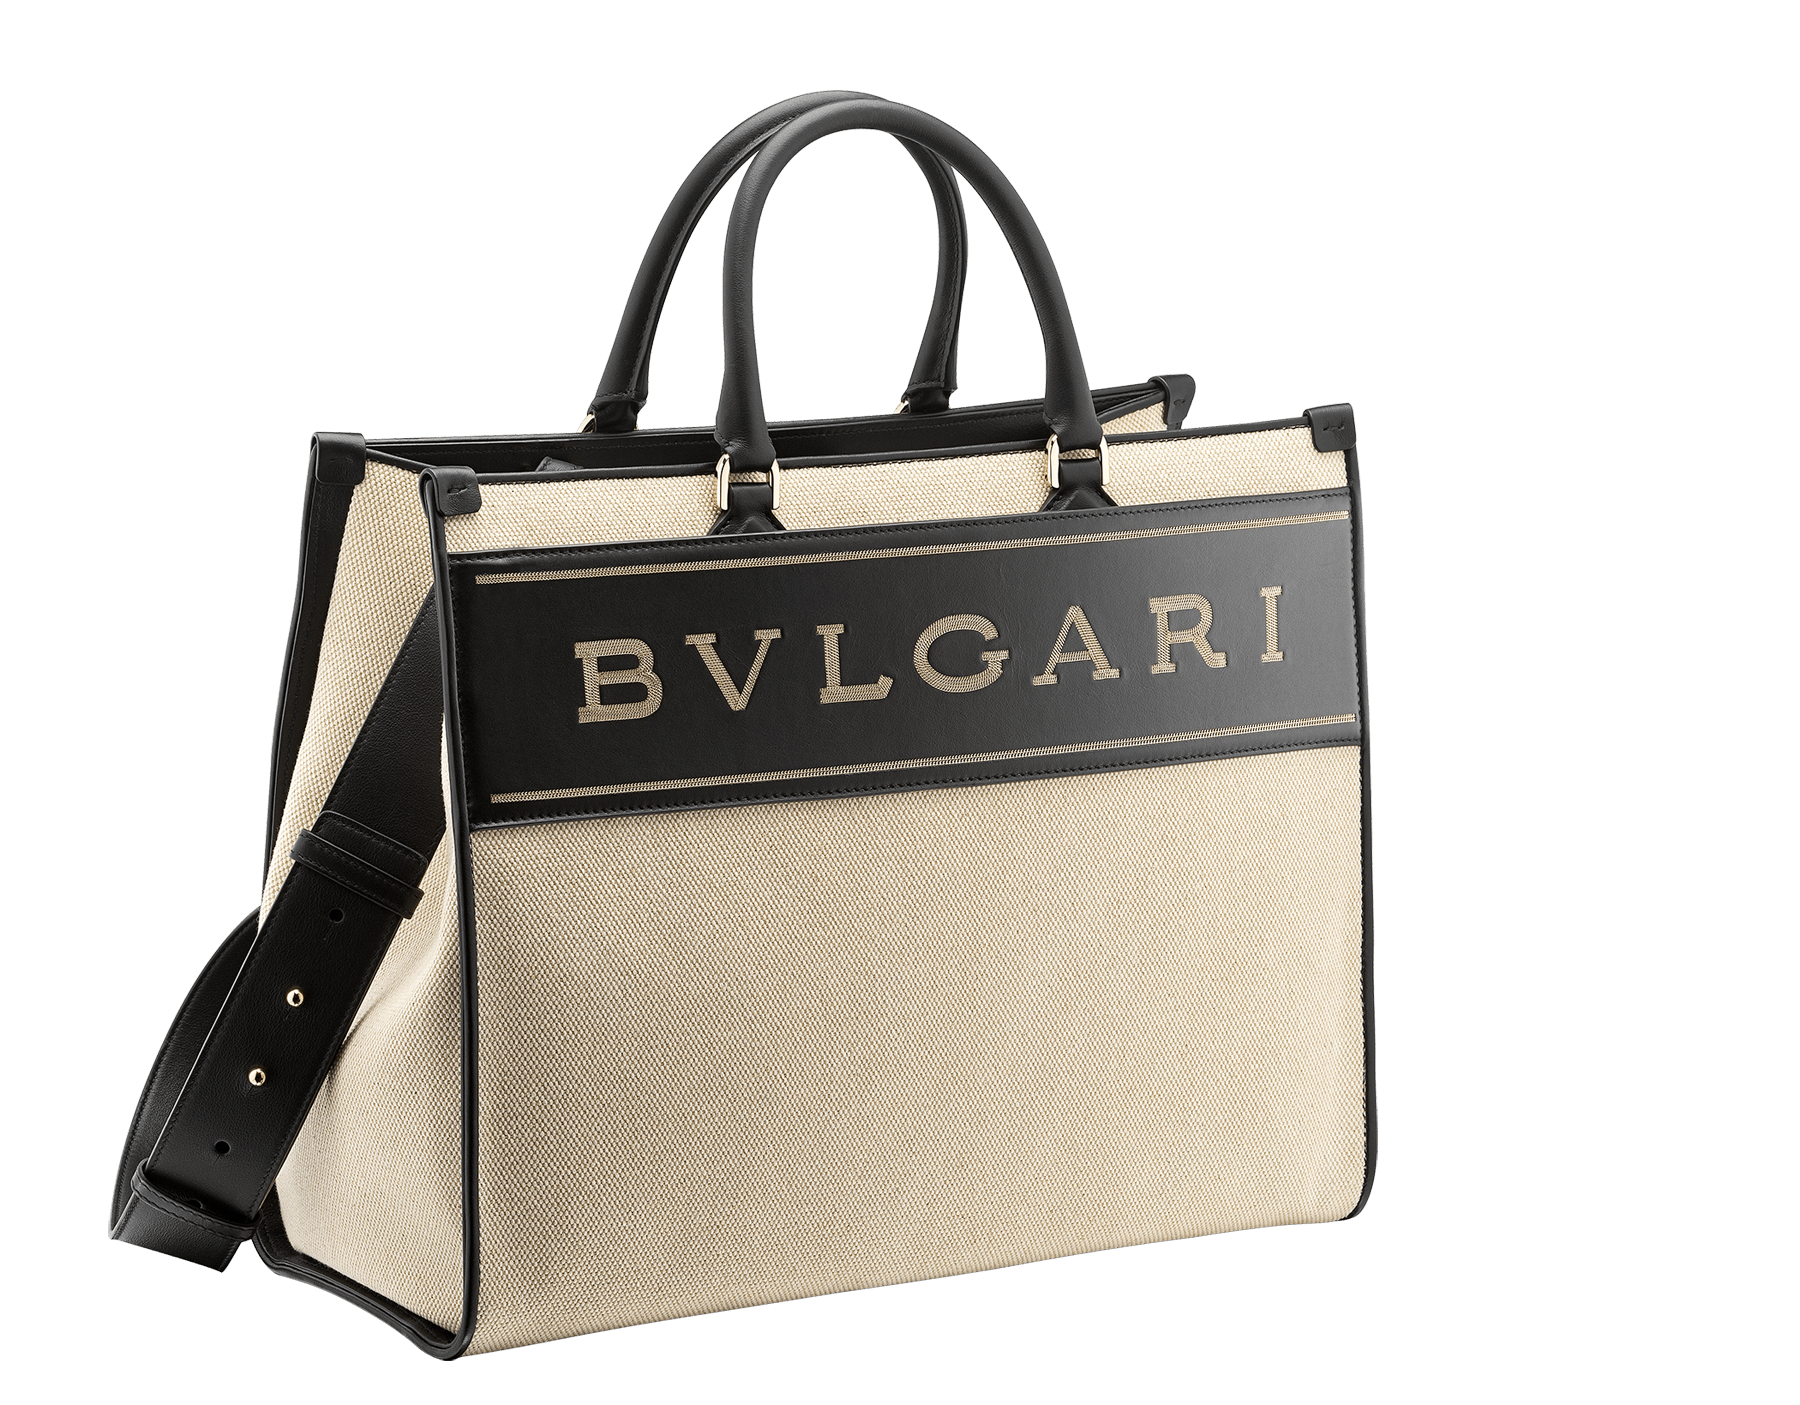 """""""Bvlgari Logo"""" large tote bag in black calf leather, with black grosgrain inner lining. Bvlgari logo featured with dark ruthenium-plated brass chain inserts on the black calf leather. BVL-1160 image 2"""